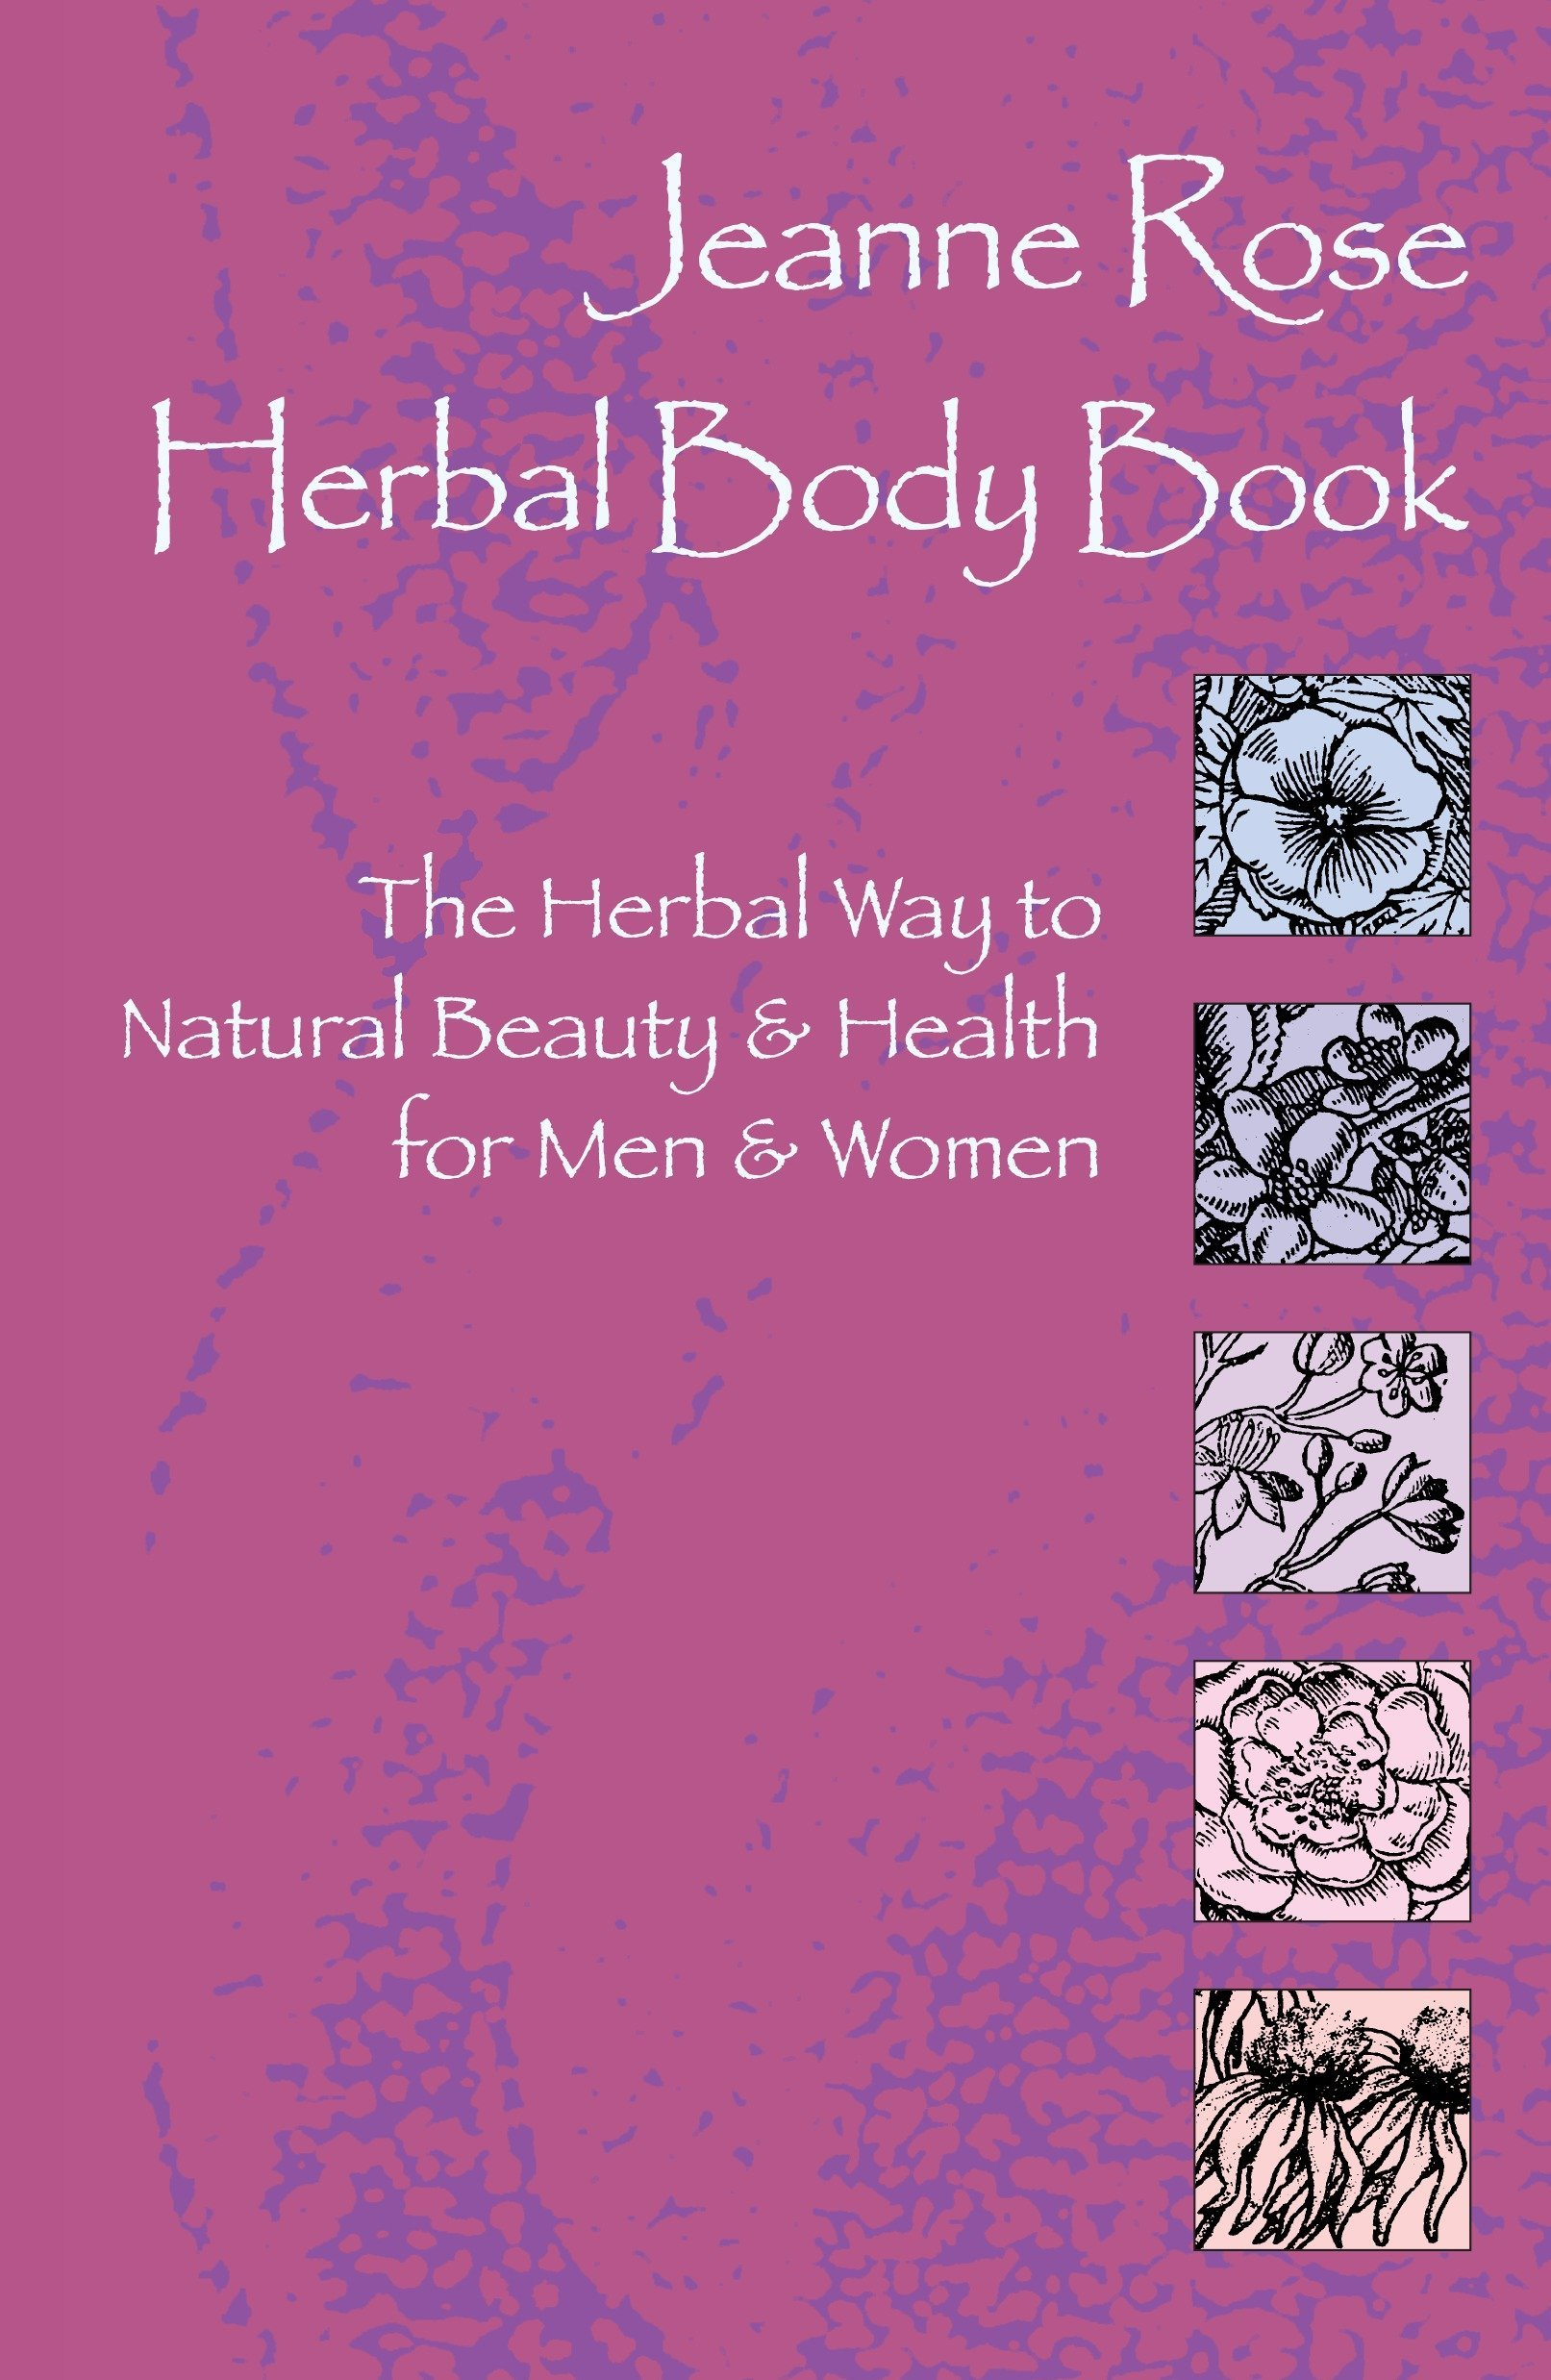 Jeanne Rose: Herbal Body Book: The Herbal Way to Natural Beauty